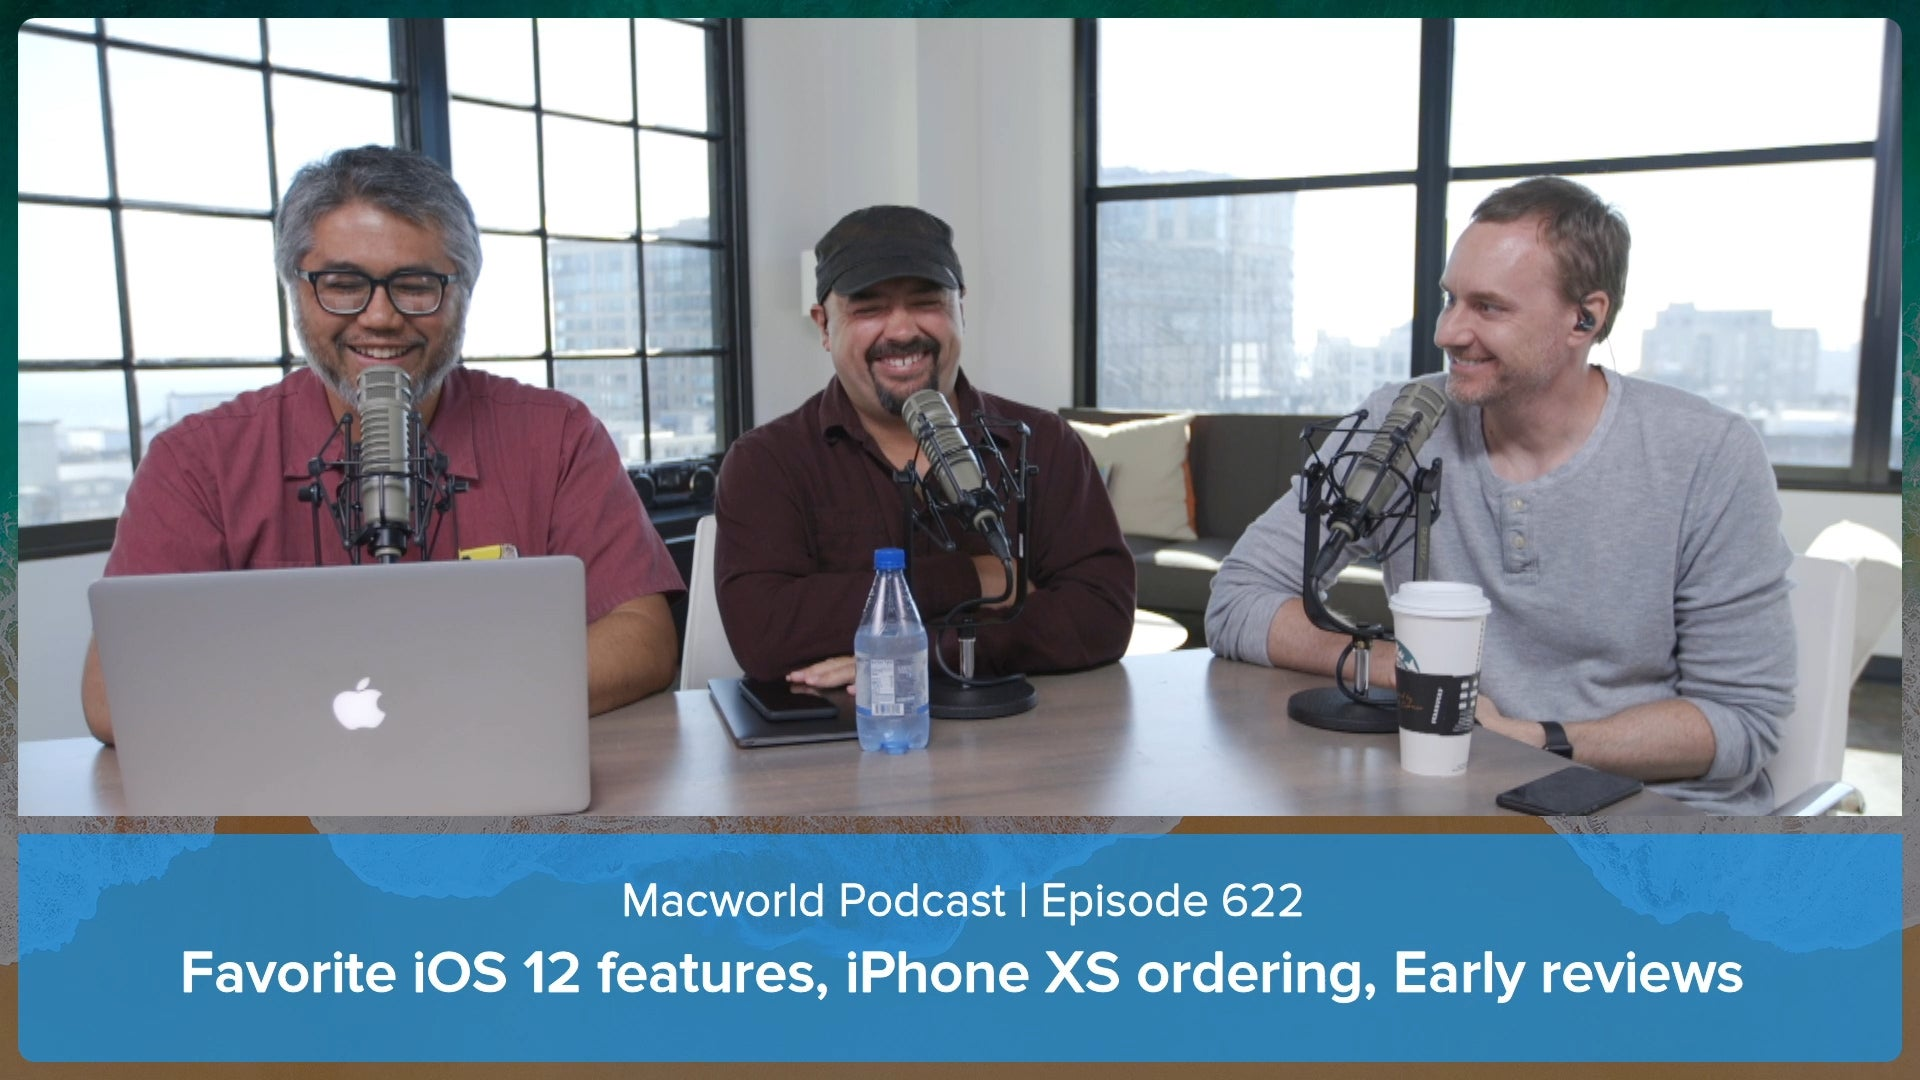 Macworld Podcast Ep. 622